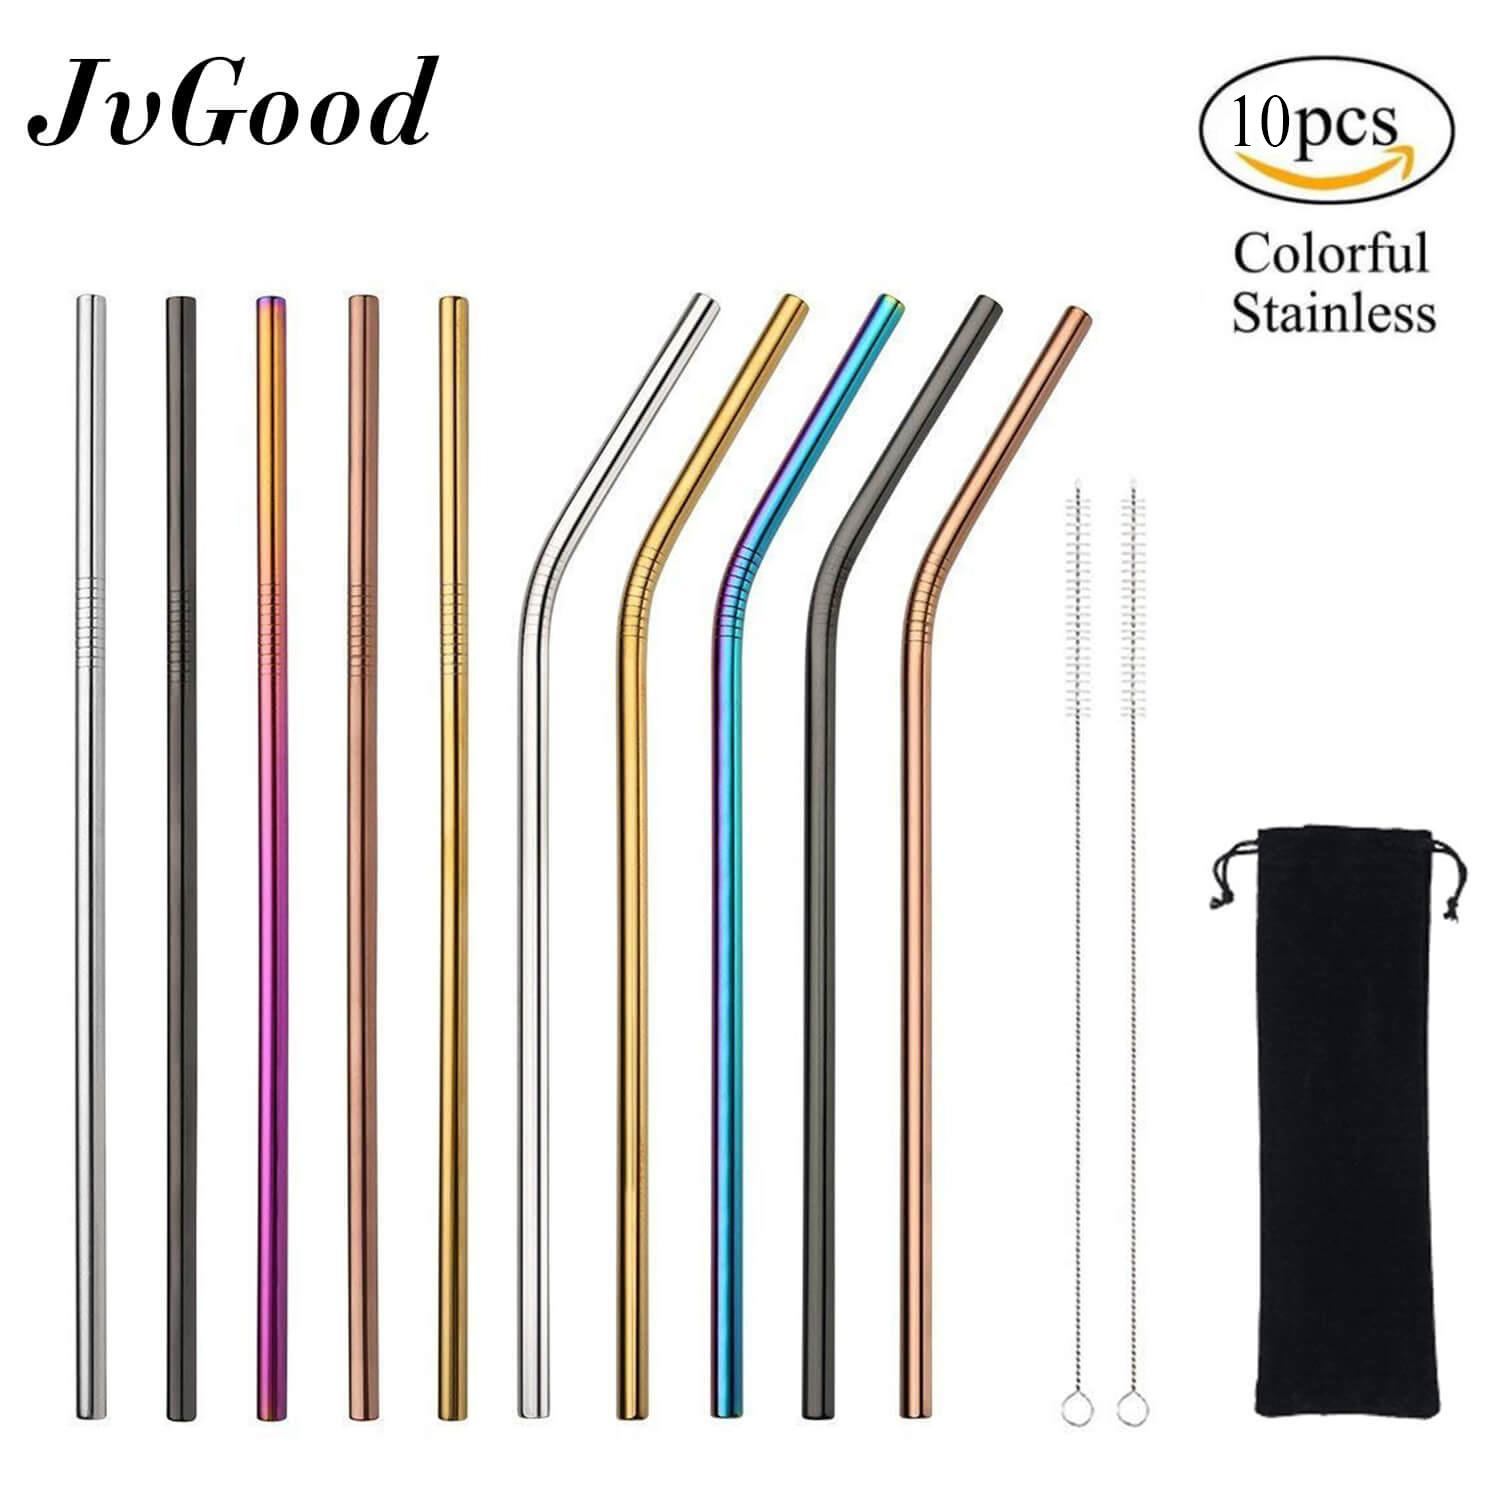 Jvgood 10 Pcs Mental Straws Stainless Steel Straws Reusable Long Drinking Straws With 2 Free Cleaning Brushes By Jvgood.